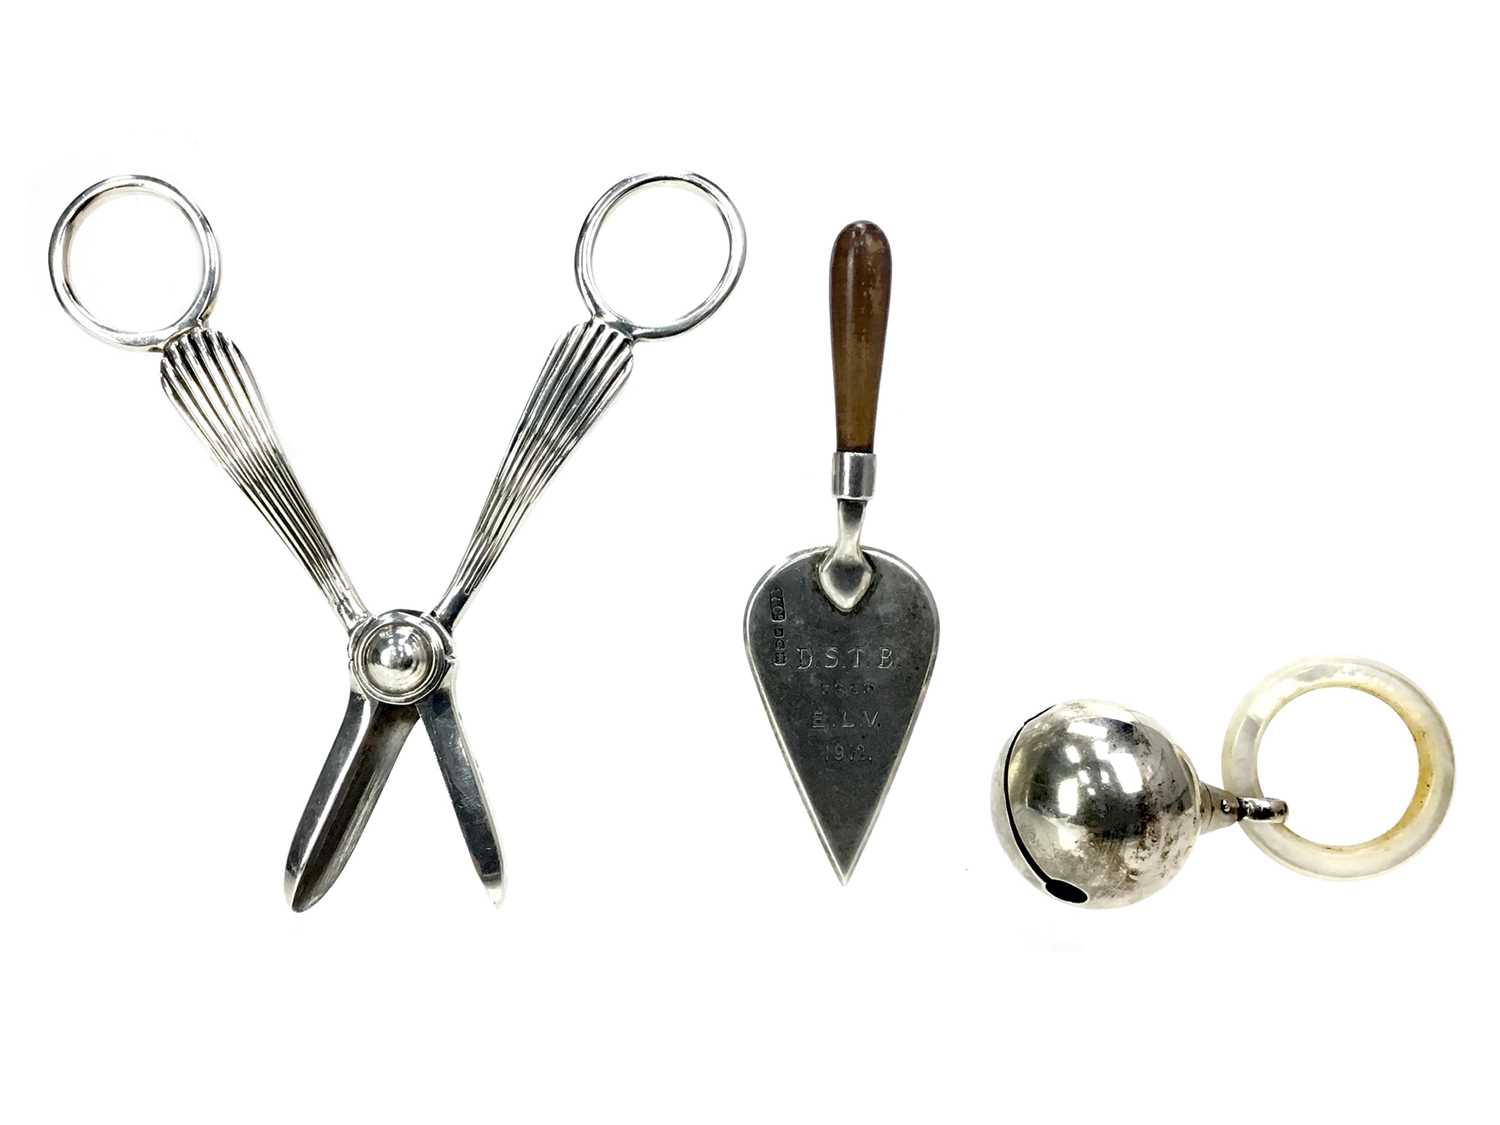 Lot 430 - A PAIR OF EARLY 20TH CENTURY SILVER GRAPE SCISSORS ALONG WITH A RATTLE AND PRESENTATION TROWEL